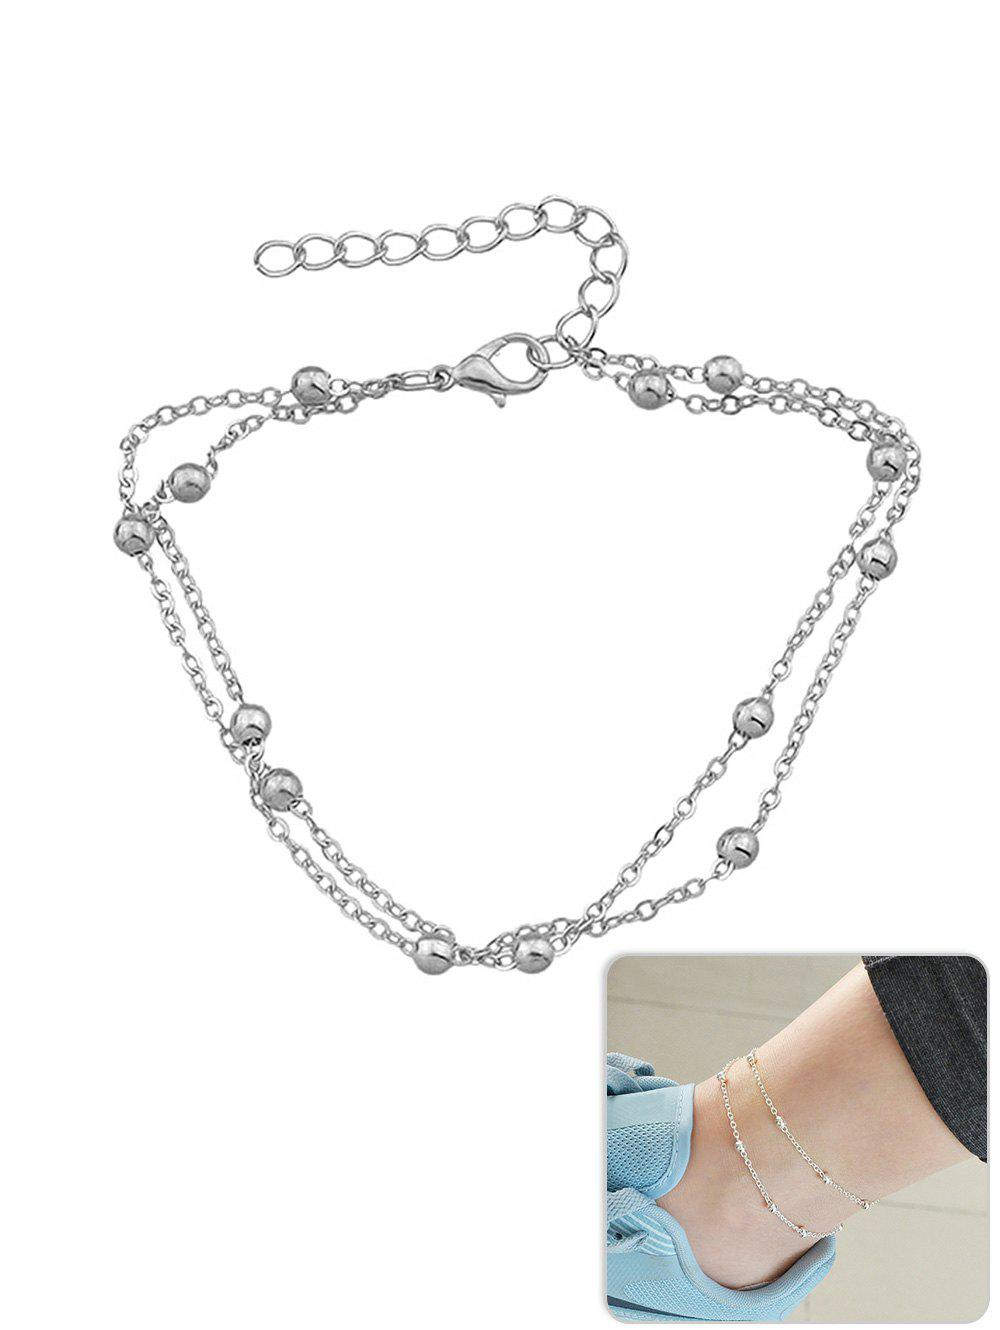 Metal Beads Designed Layered Anklet Chain bells charm layered chain anklet